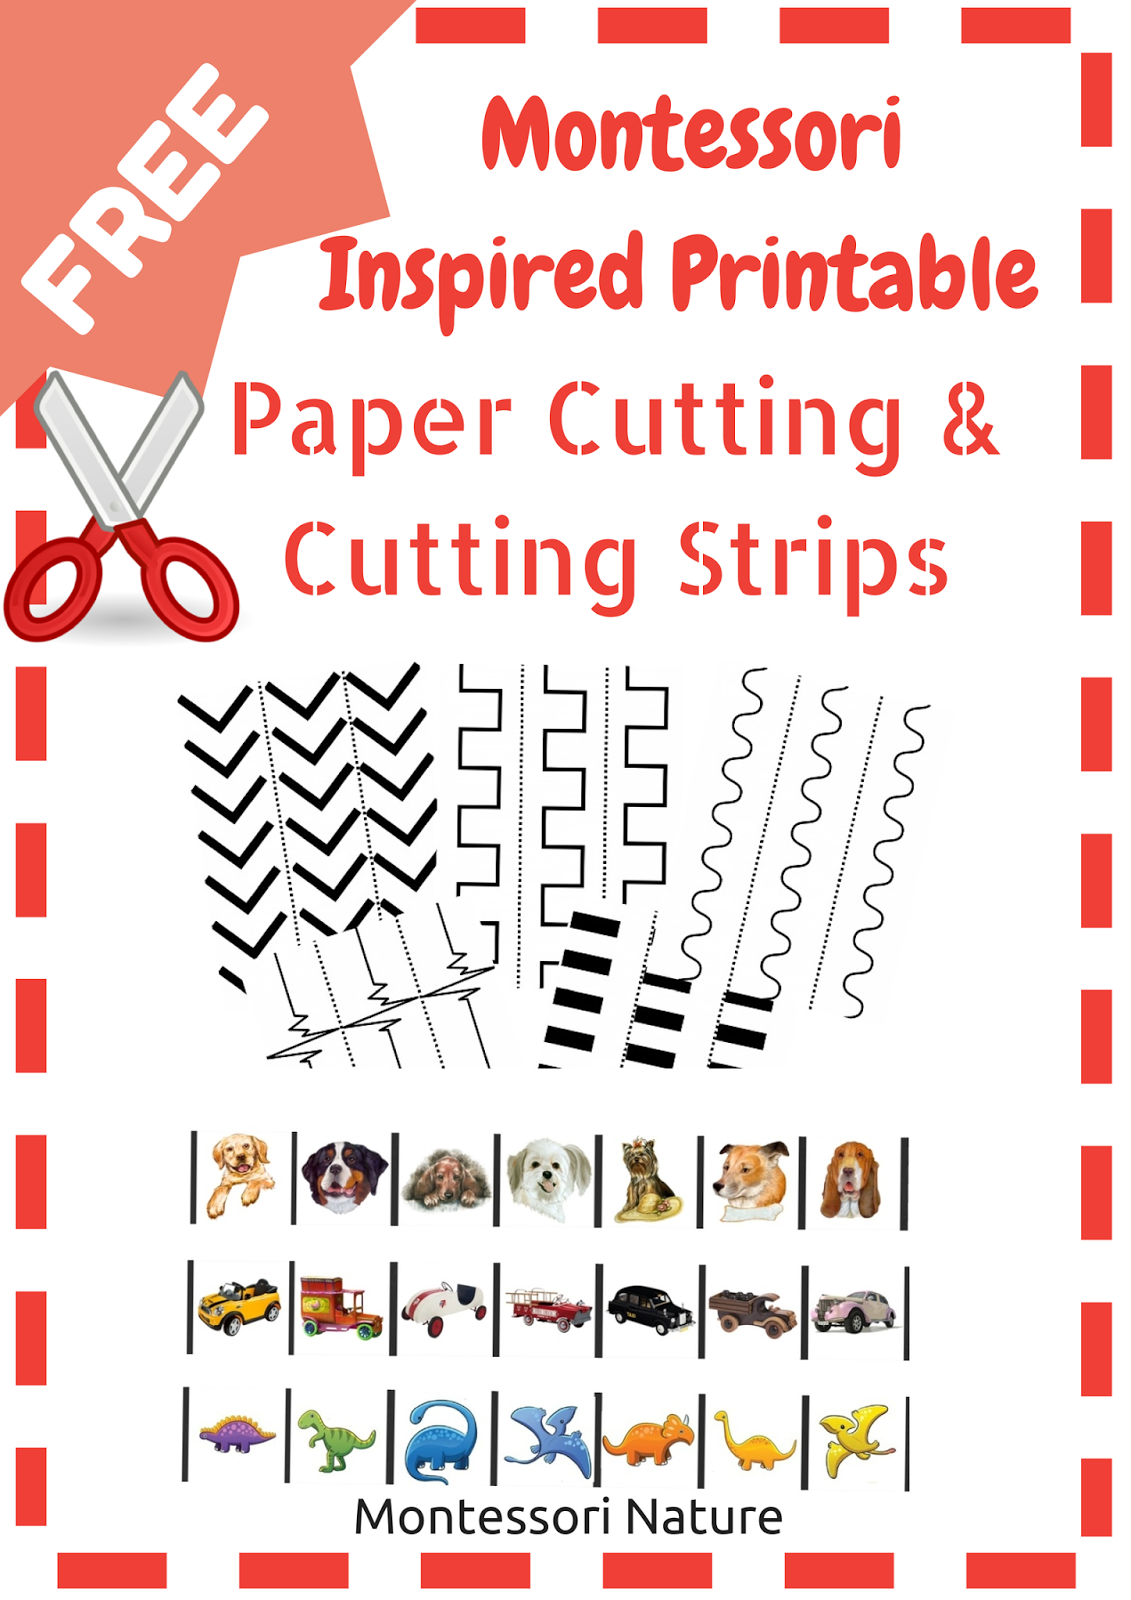 Montessori Nature Montessori Printable Paper Cutting And Cutting Strips